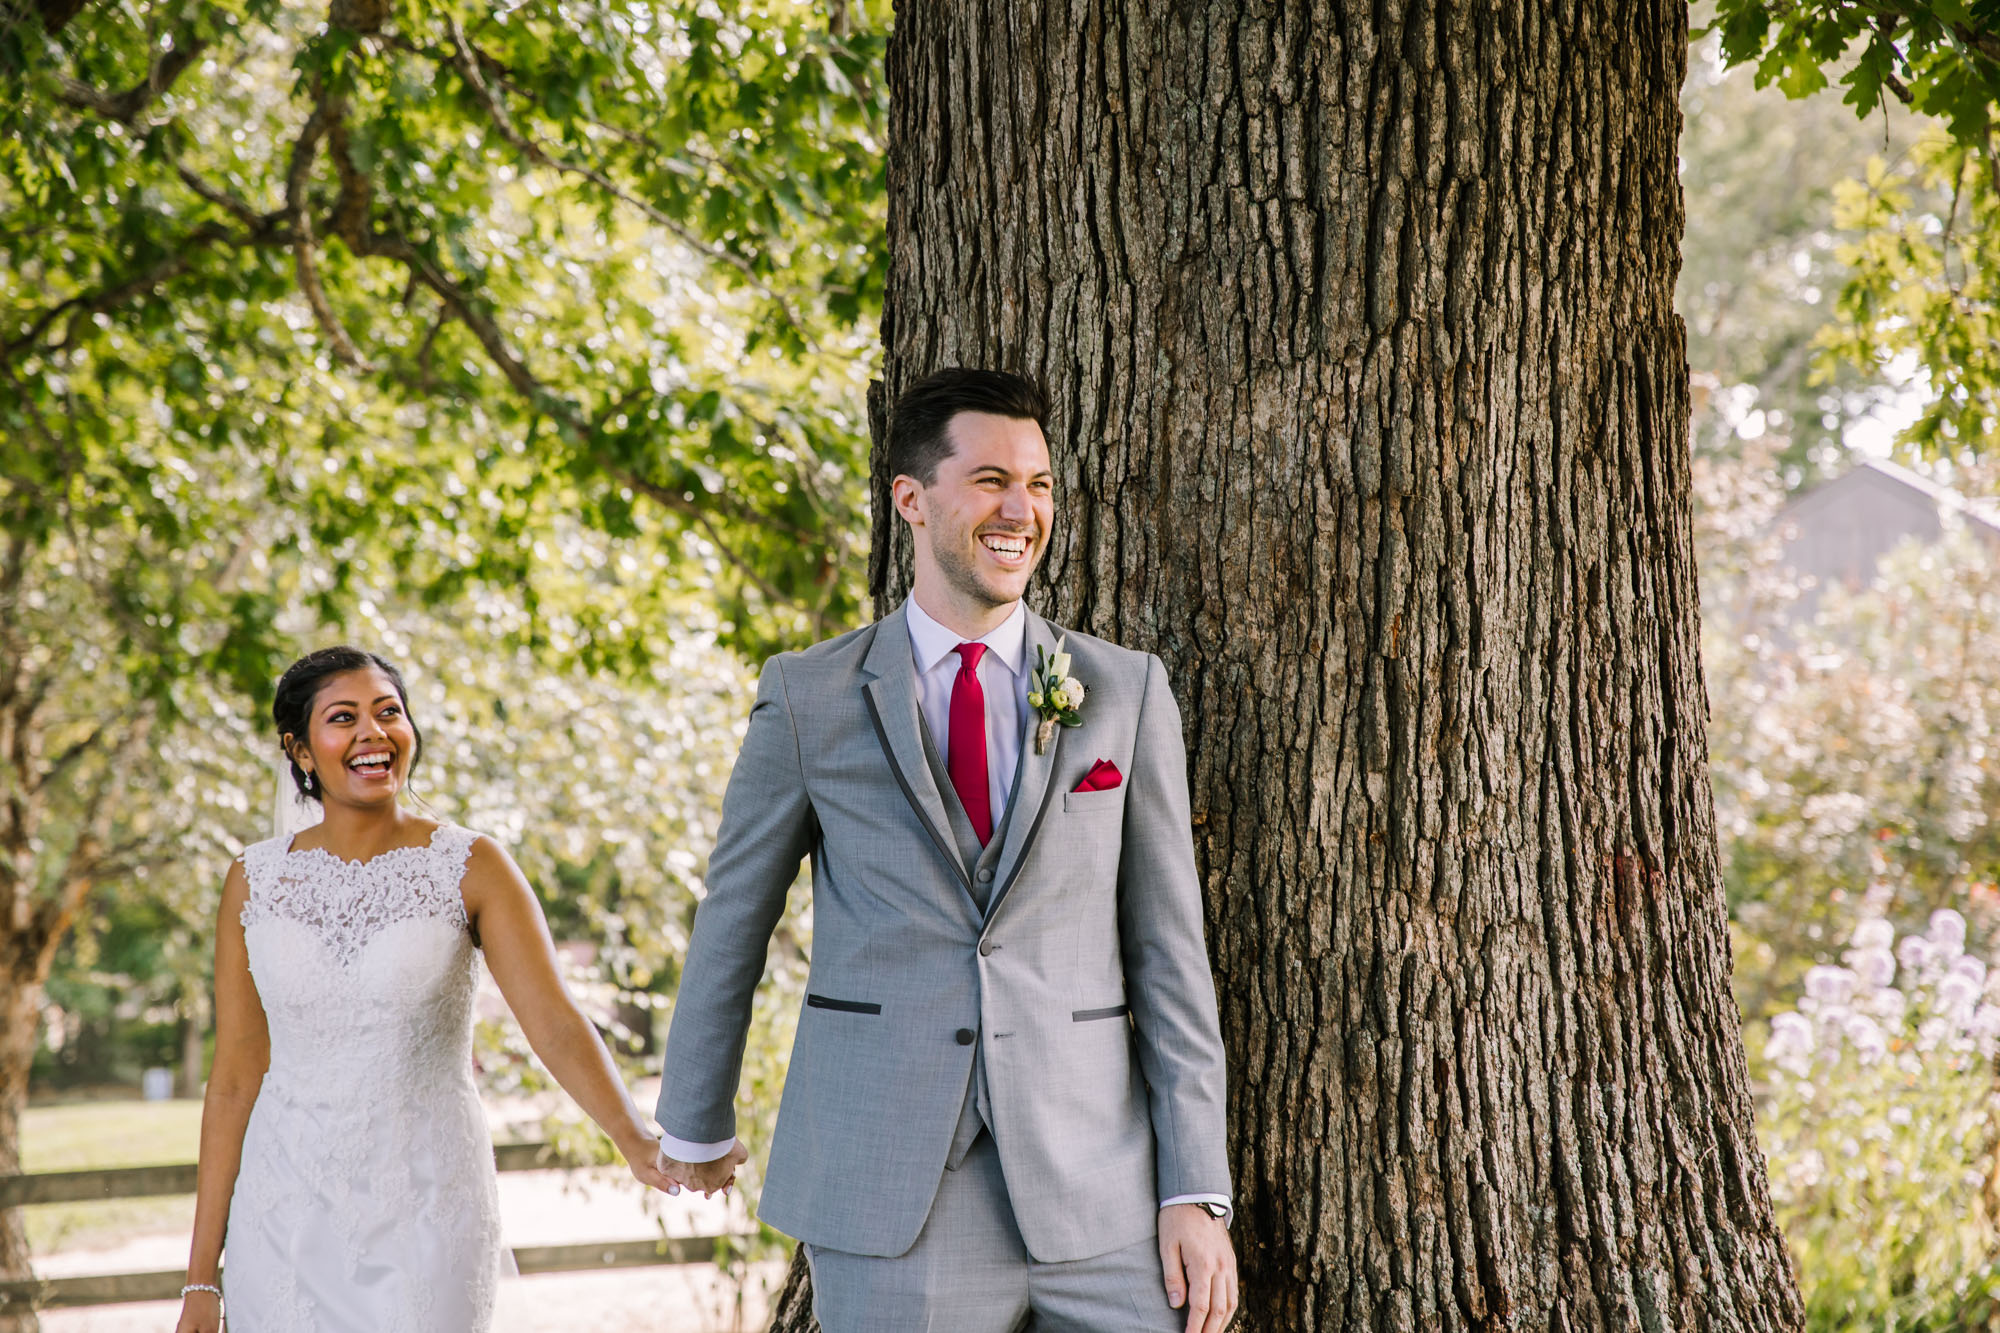 Waynesville NC Wedding Photography | Bride and Groom First Touch